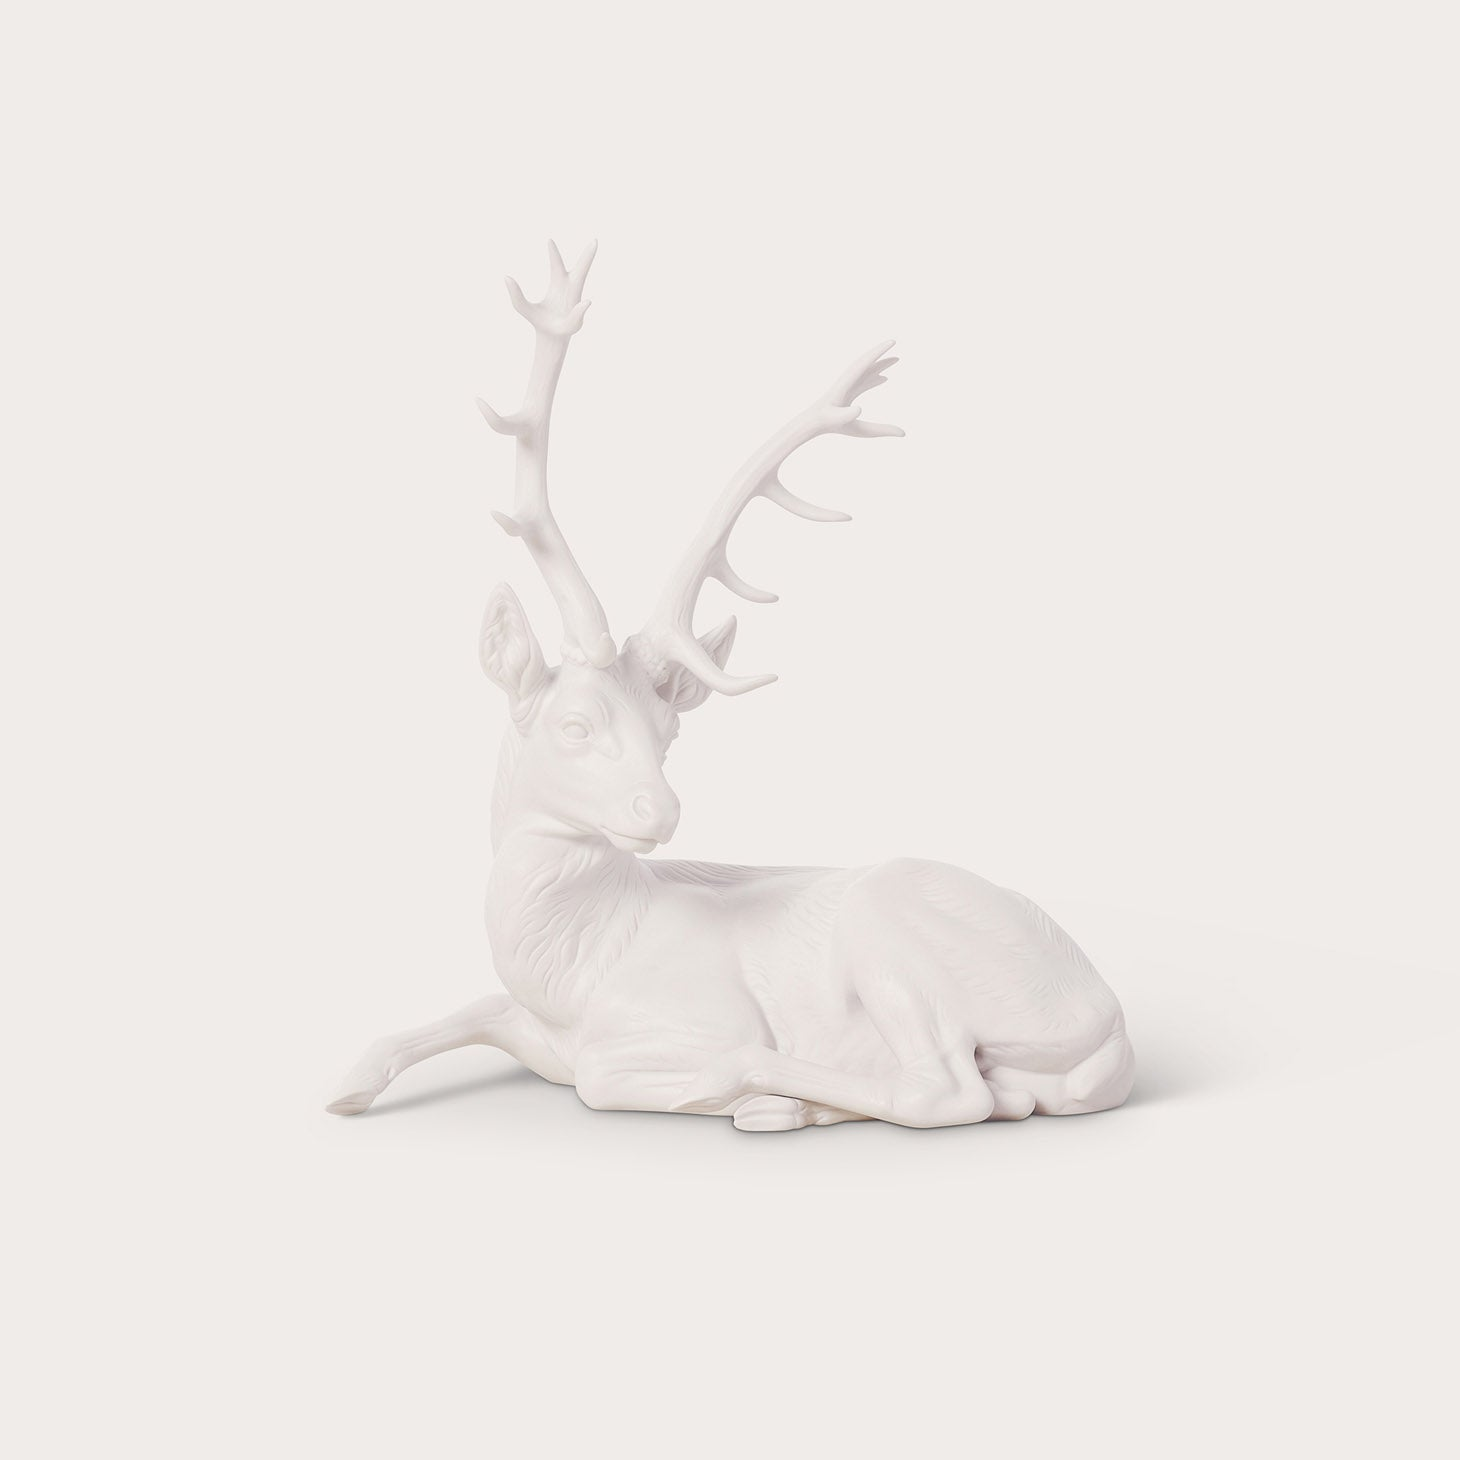 Animals-Lying Stag Accessories Nymphenburg Designer Furniture Sku: 542-100-10004